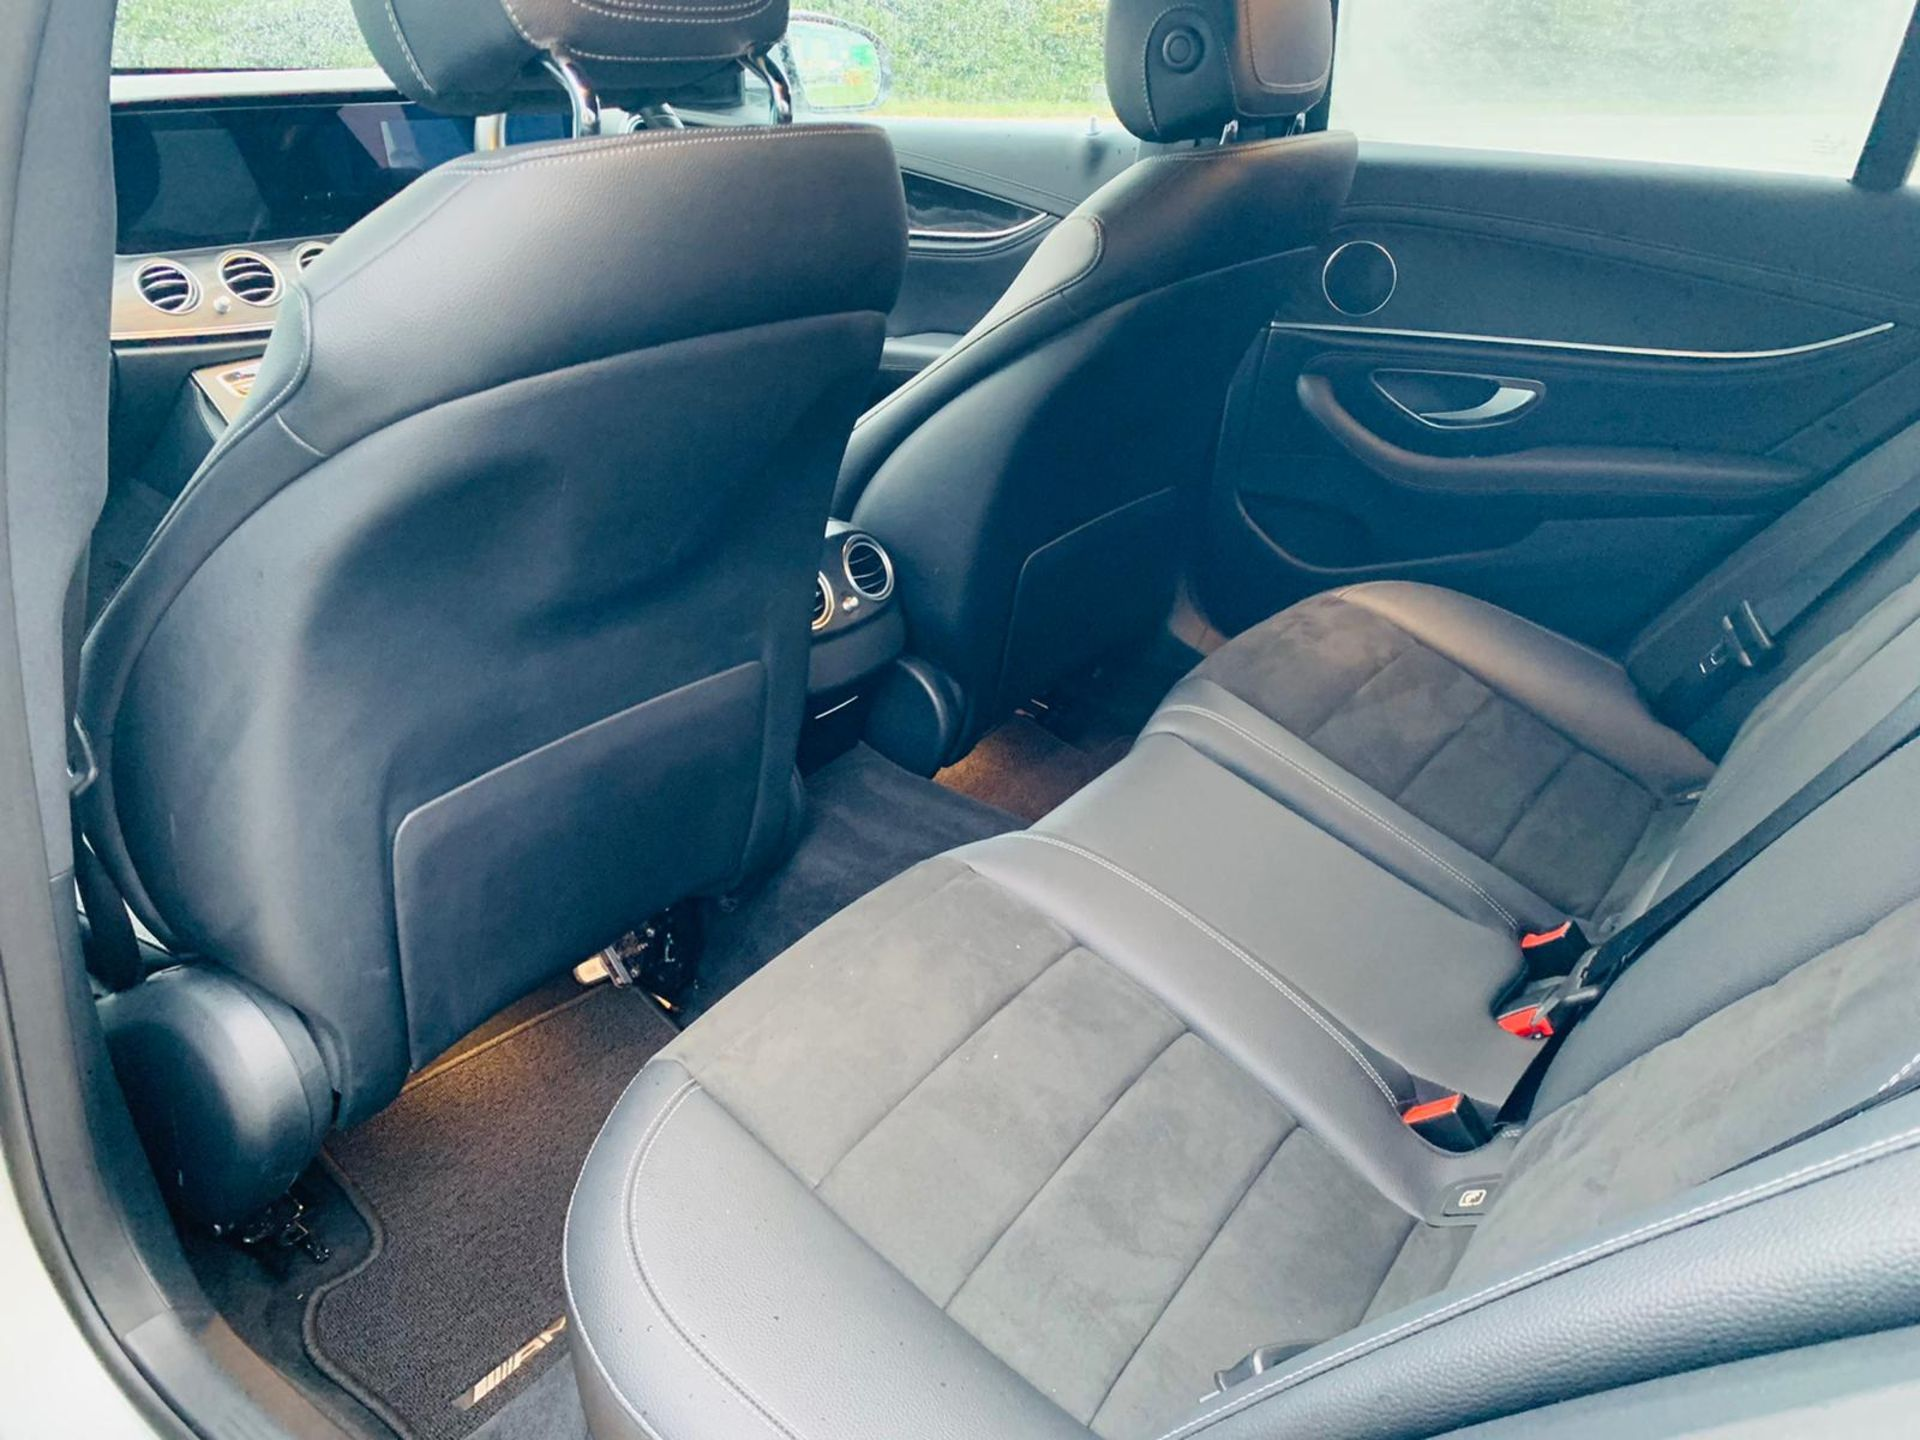 (Reserve Met)Mercedes E220d AMG Line Auto 9G Tronic - 2019 Reg - Reversing Cam - 1 Owner From New - Image 16 of 30